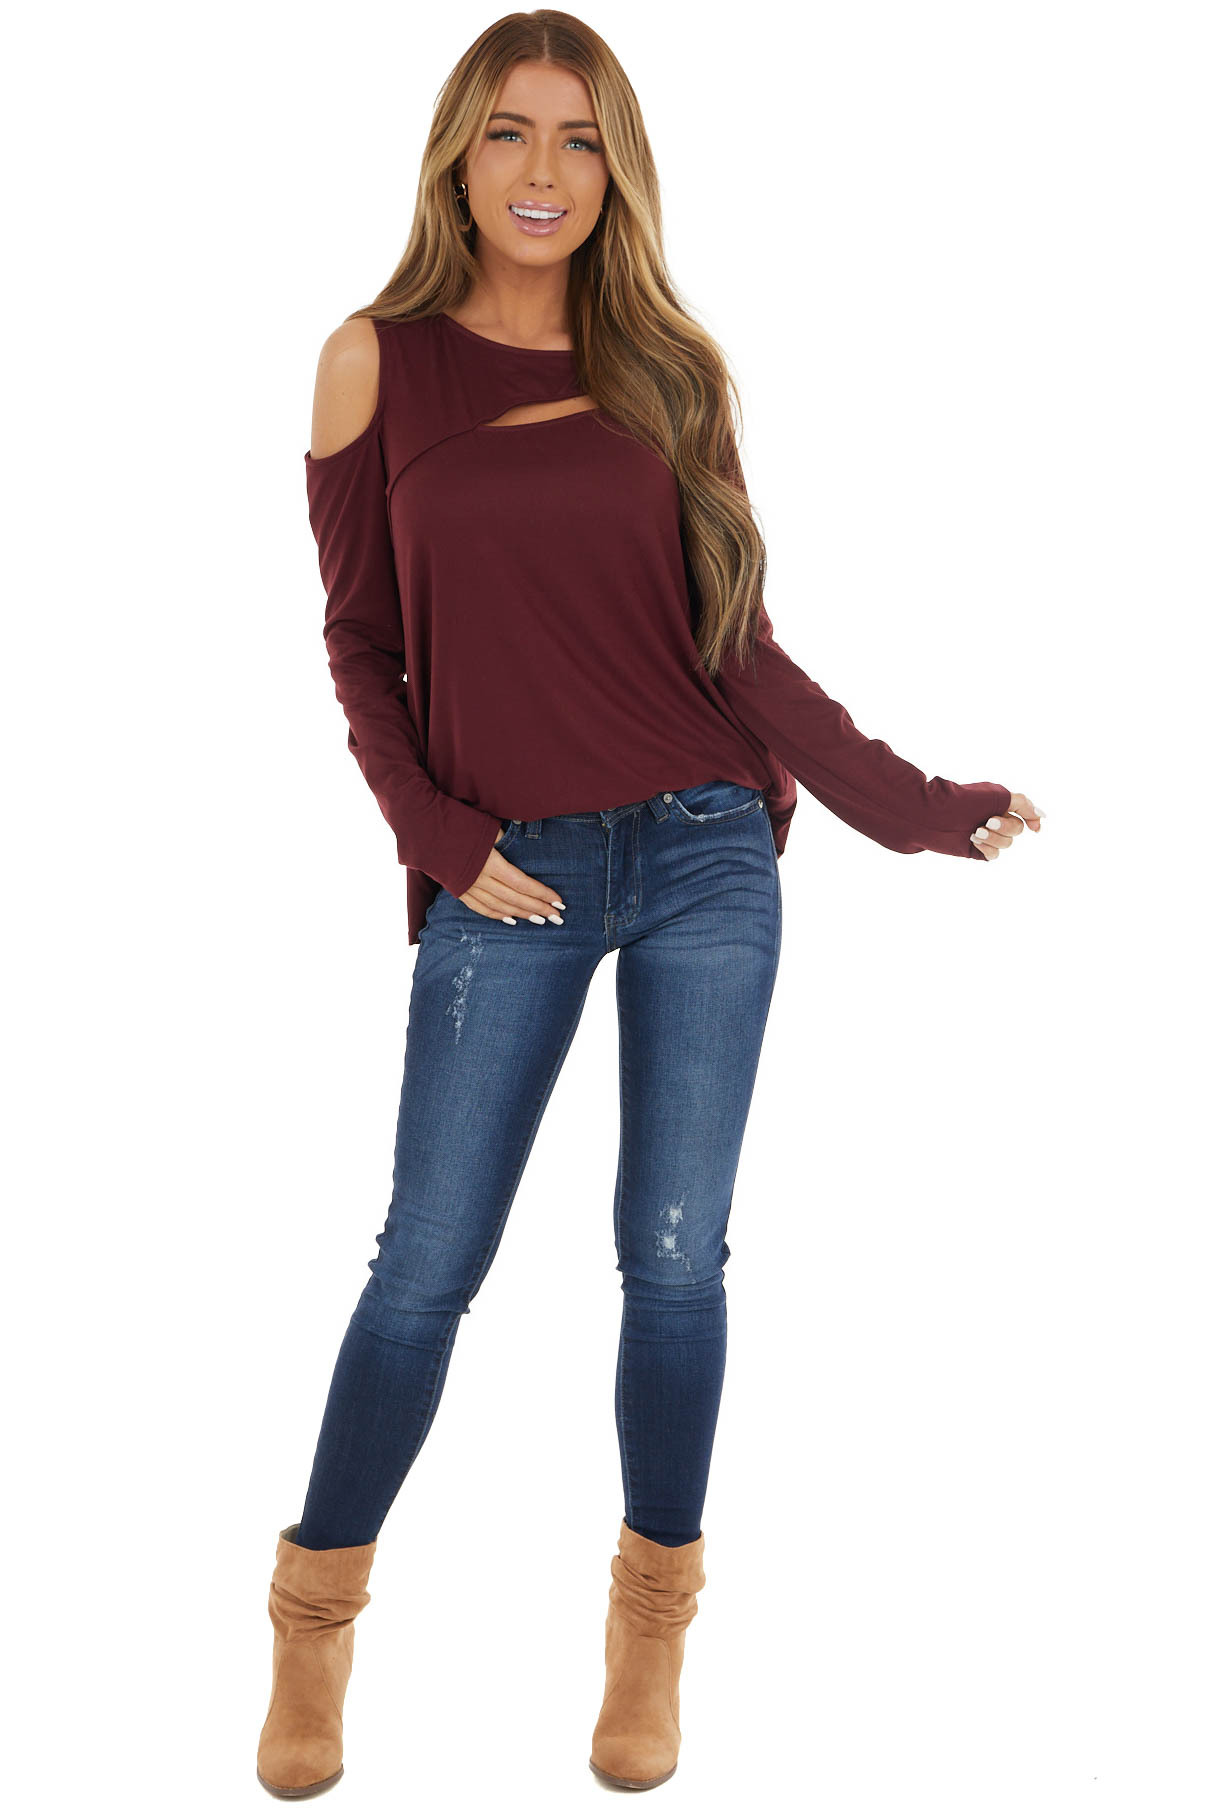 Burgundy One Cold Shoulder Top with Chest Cutout Detail